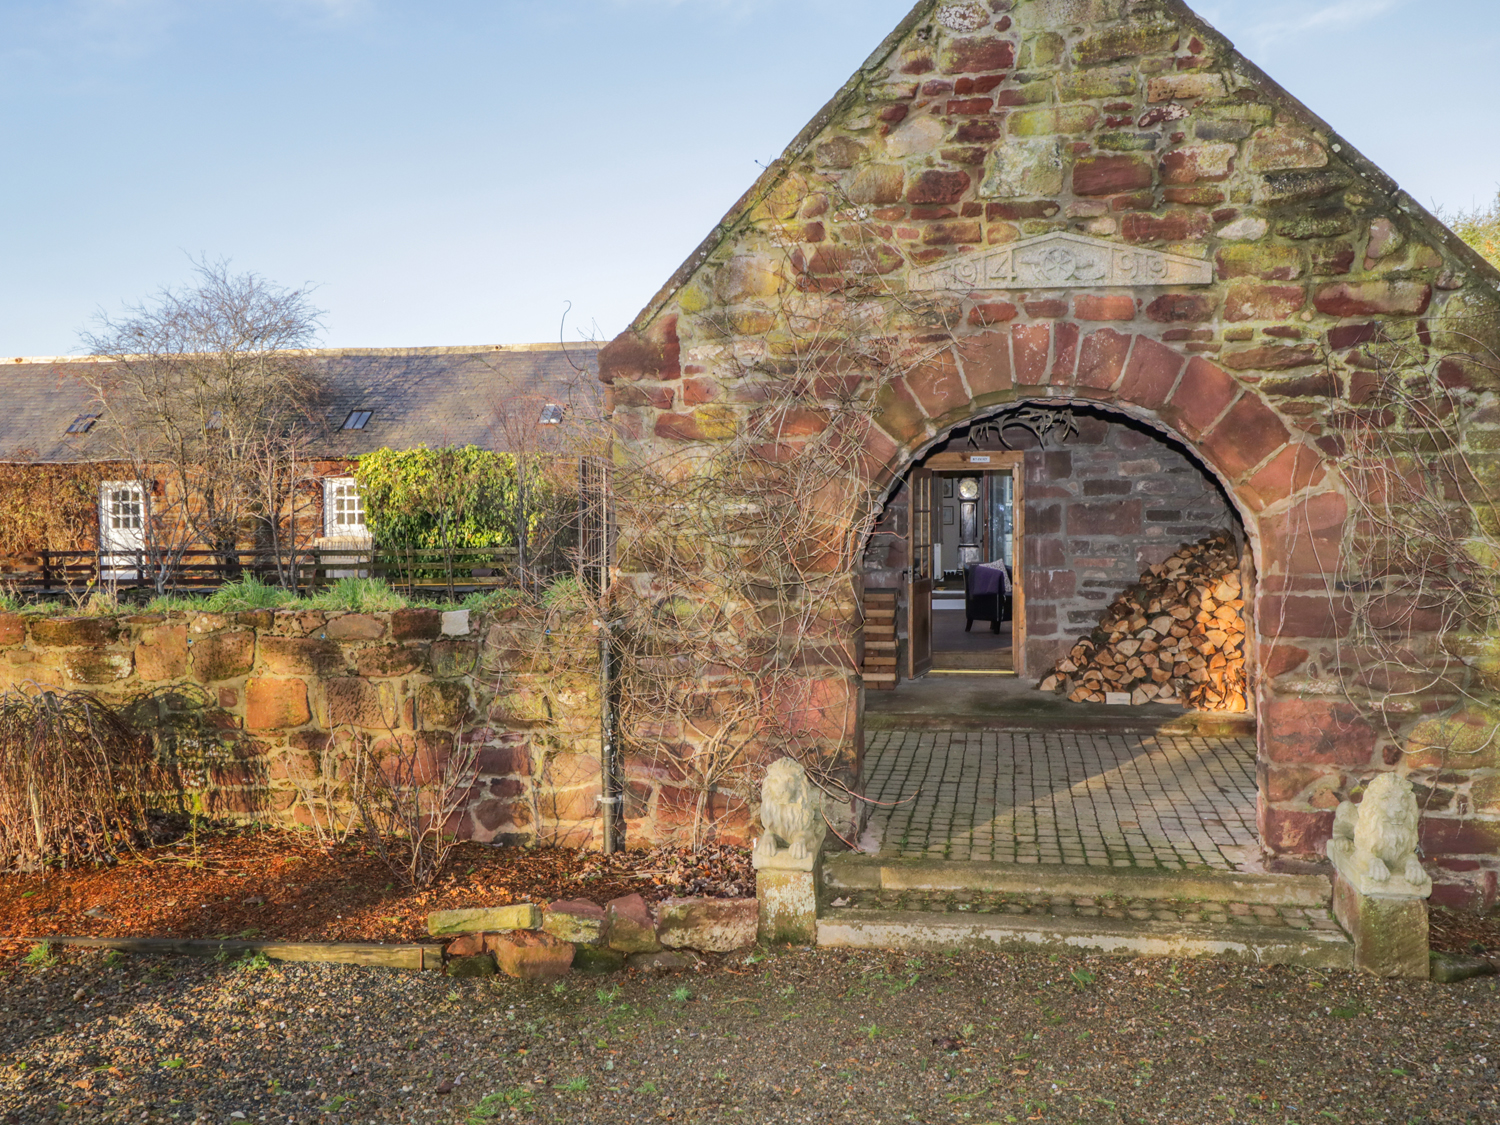 The Orangery, Moray, Aberdeenshire & The Coastal Trail